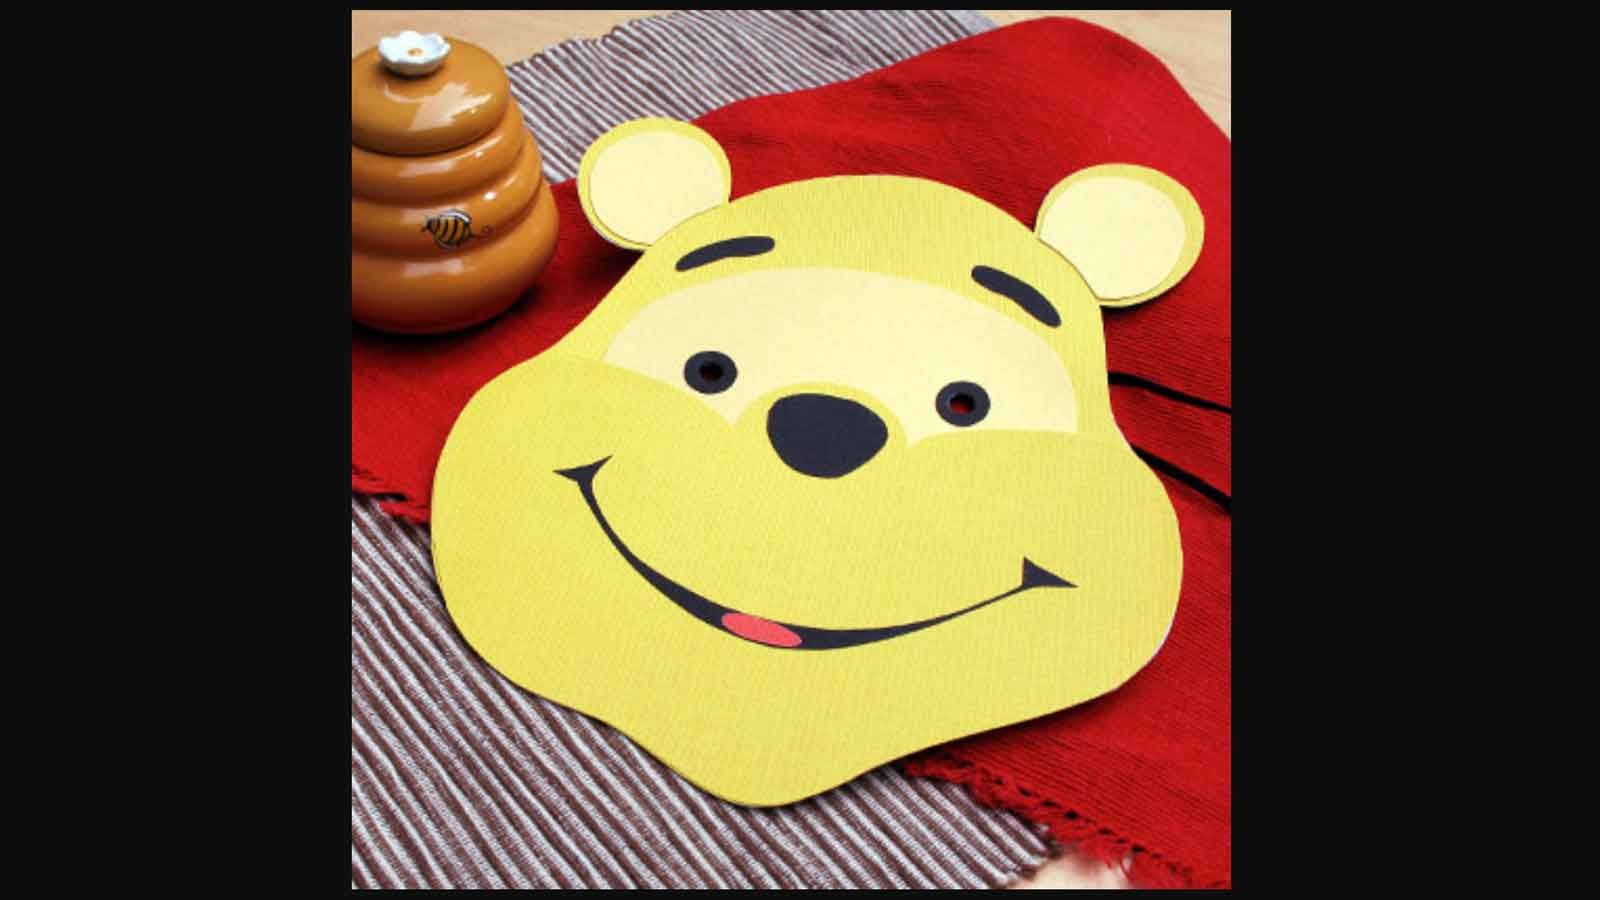 masque de winnie l'ourson